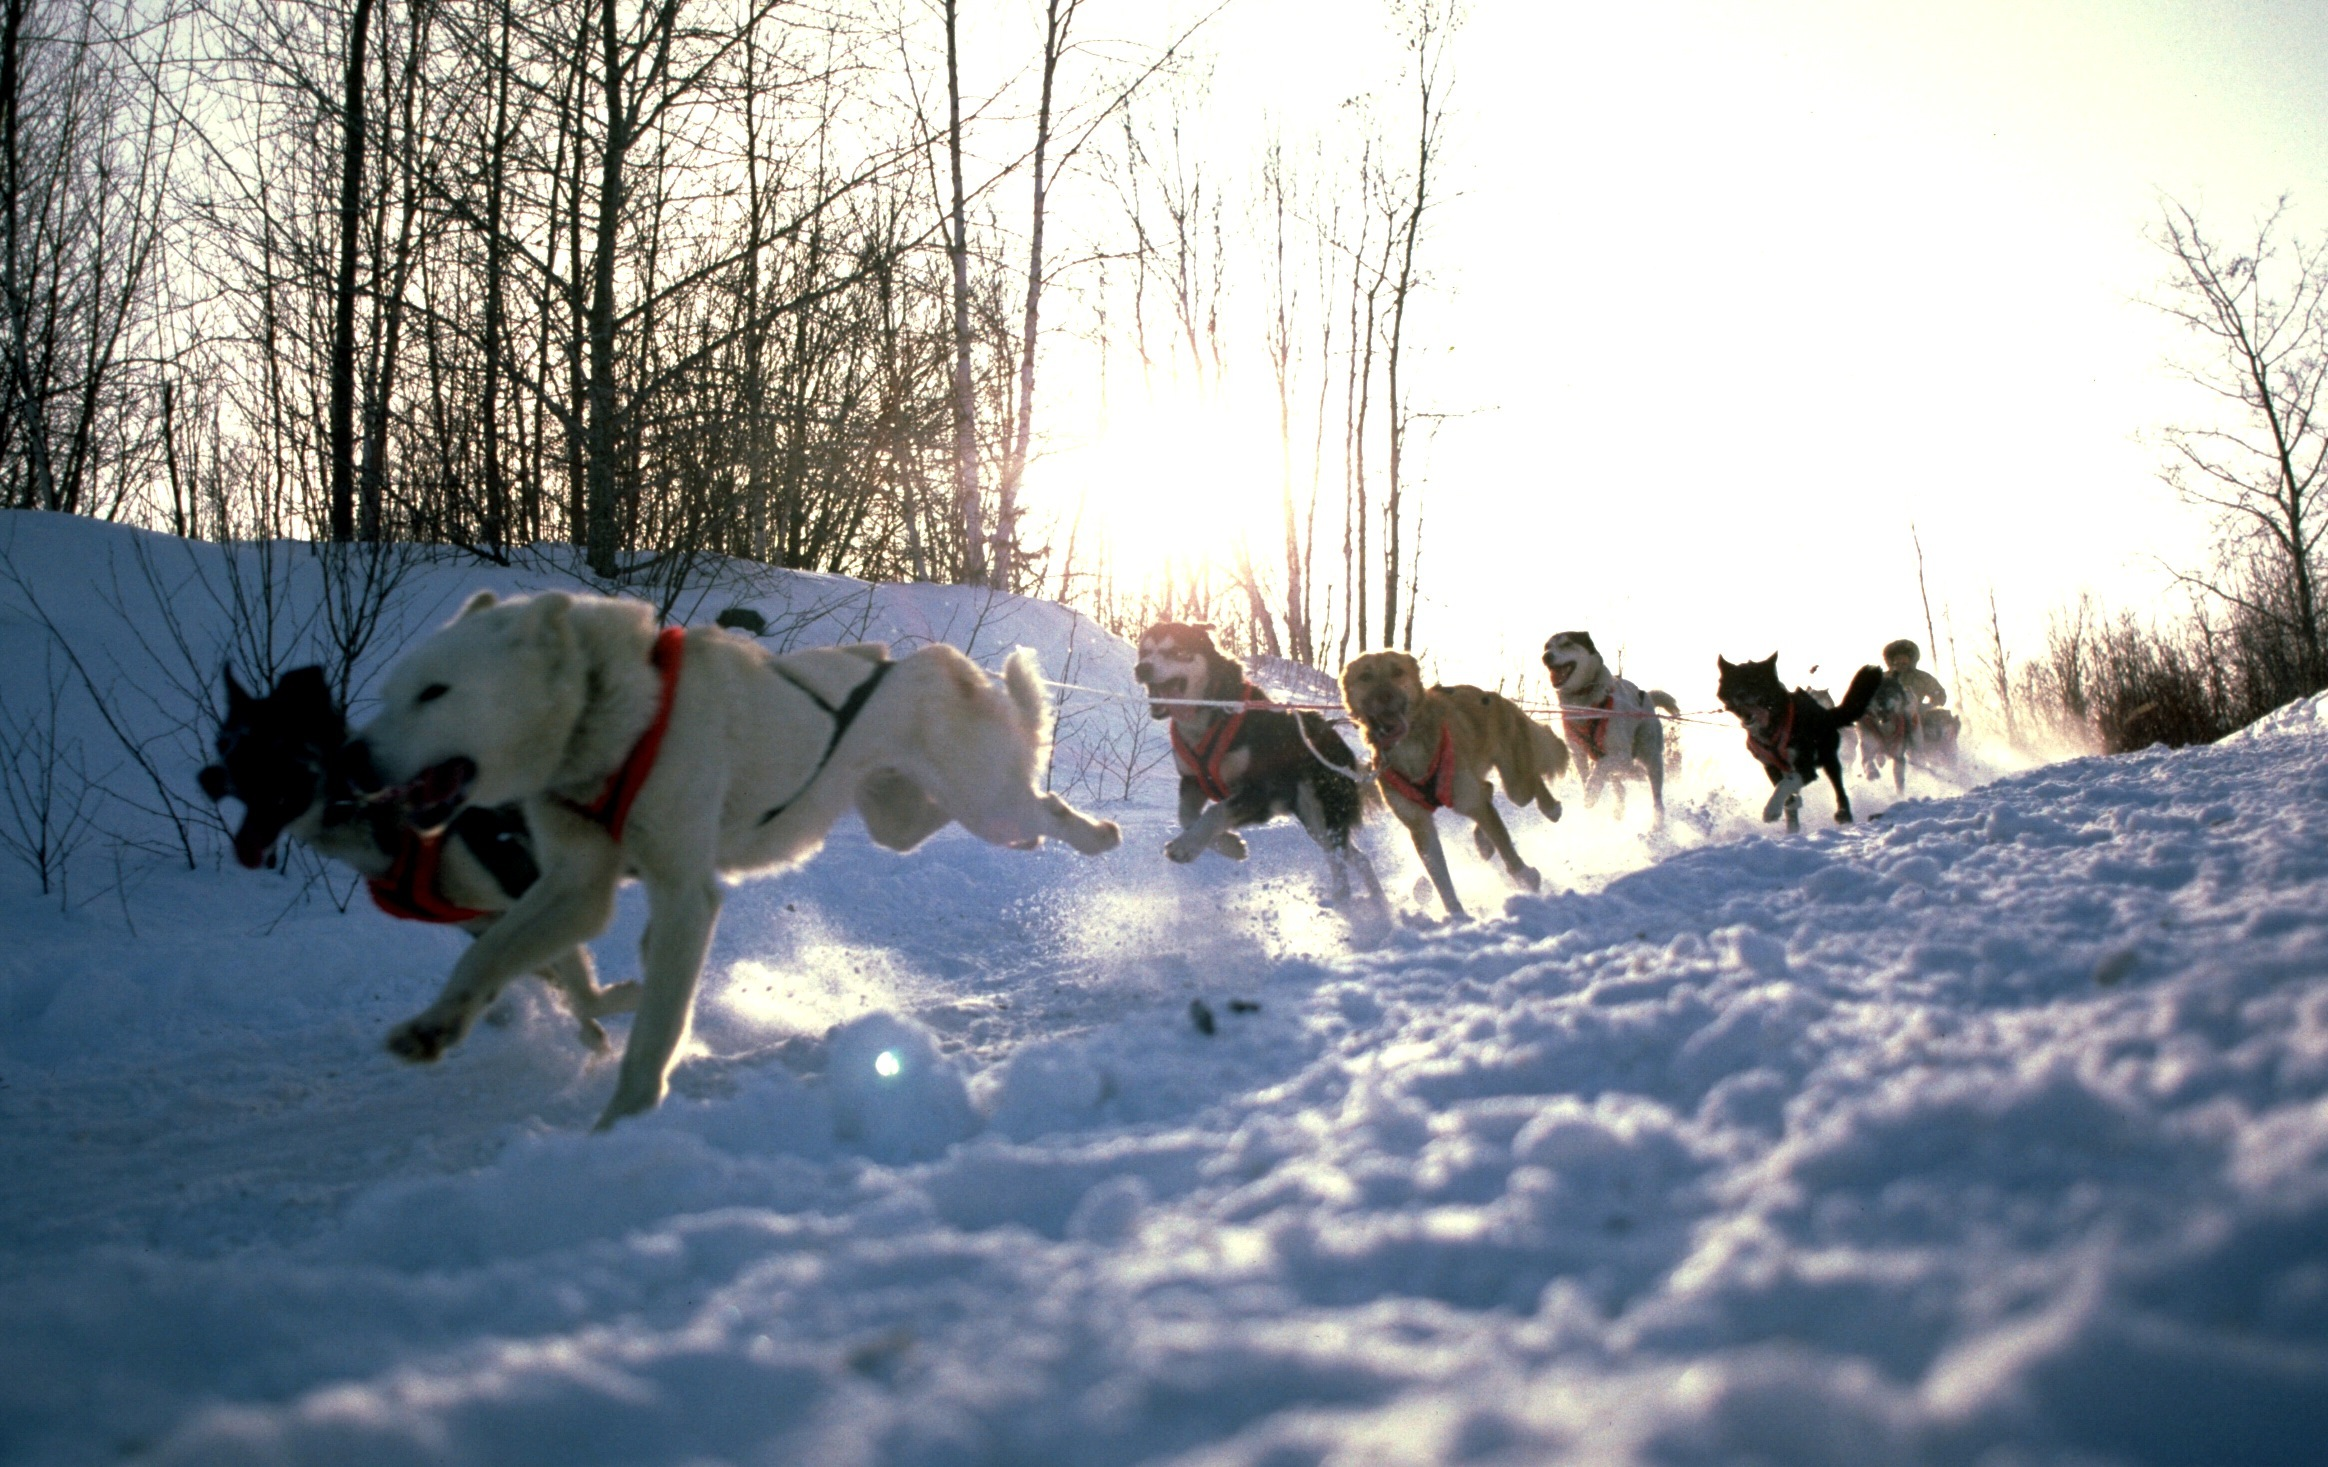 A team of sled dogs races down a snowy trail.